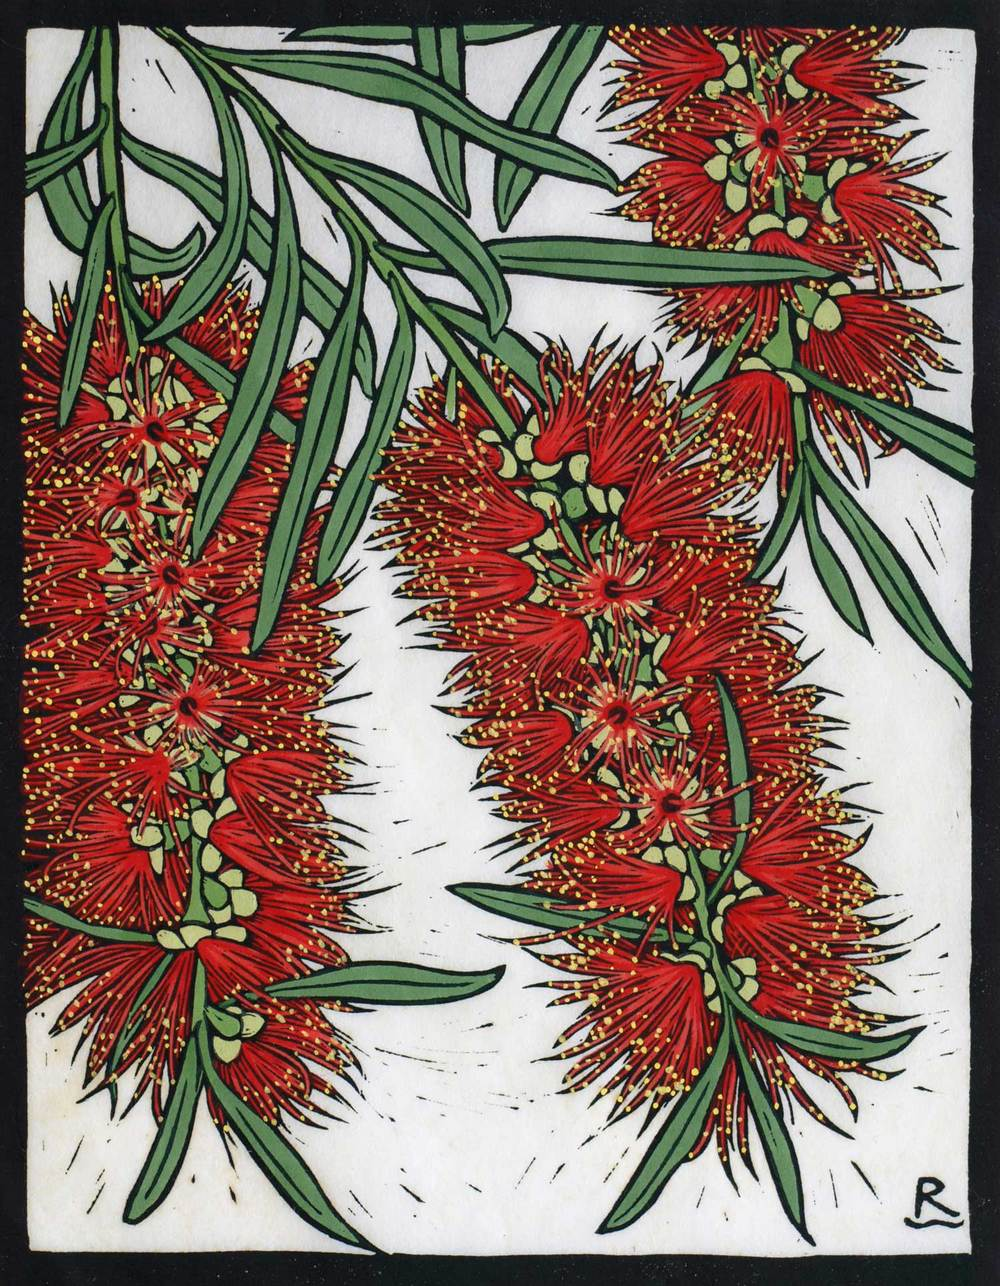 bottle-brush-linocut-rachel-newling.jpg